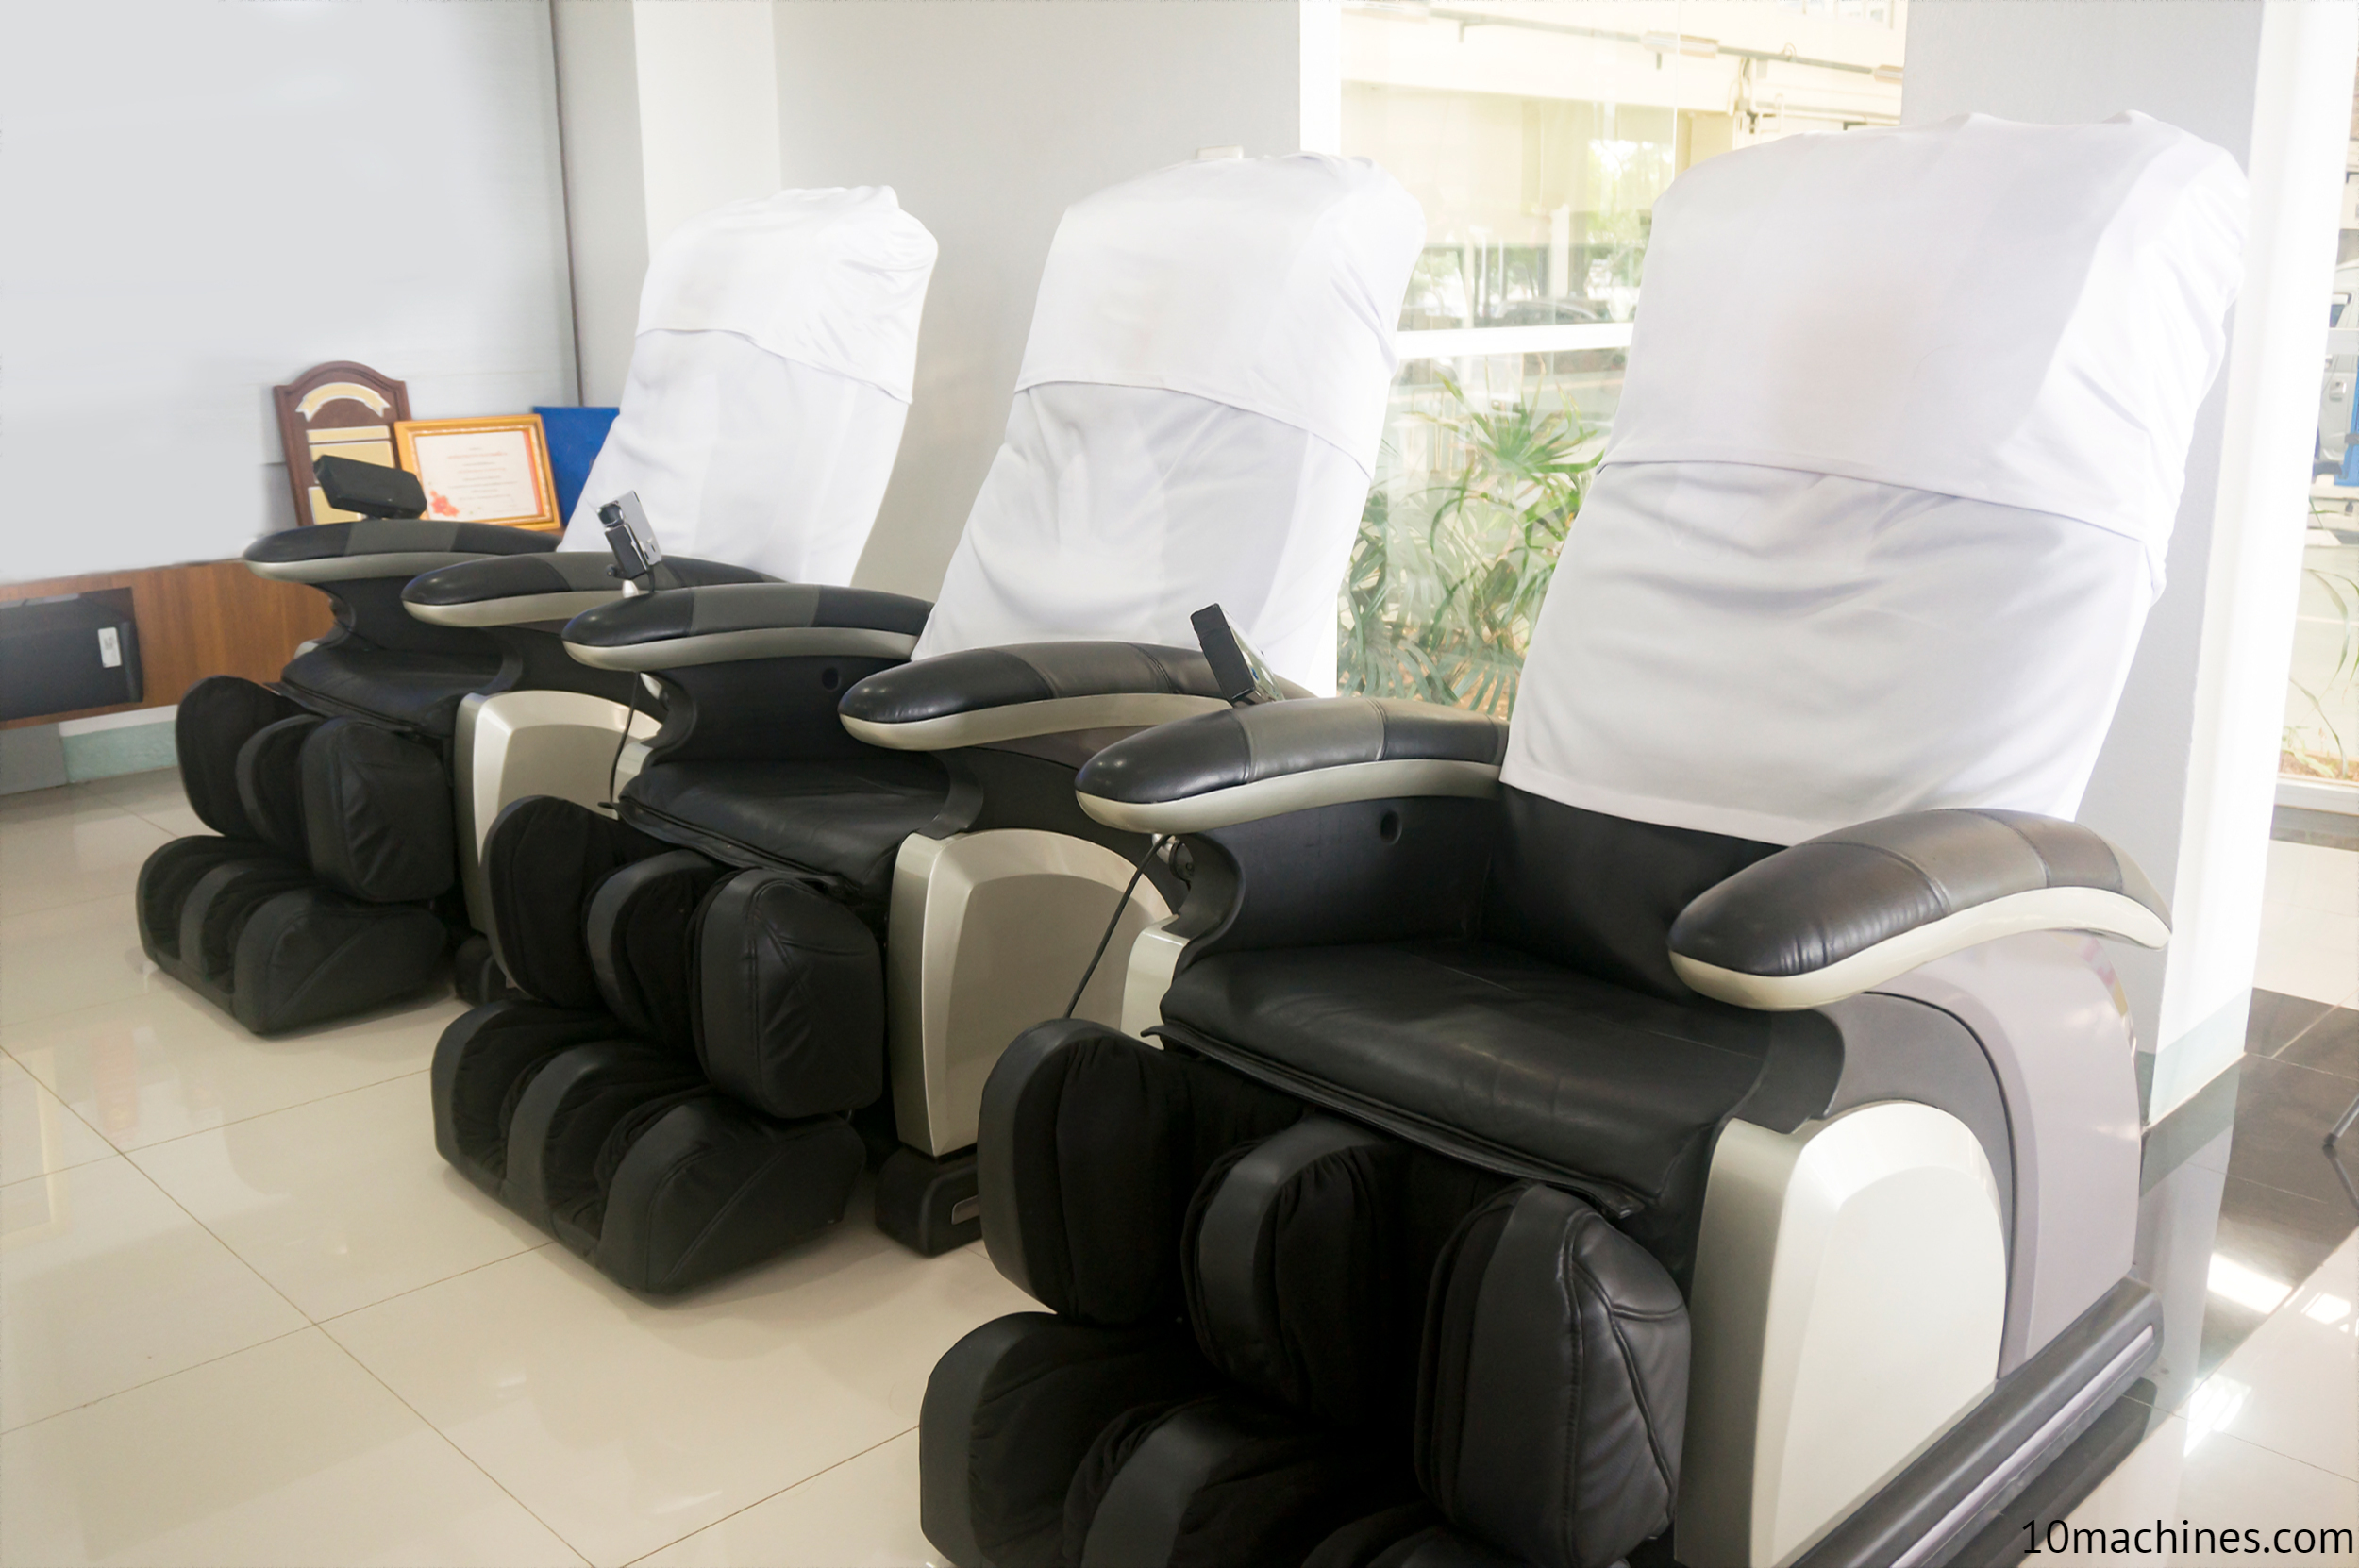 Best Massage Chairs 2018 Reviews: The Truth [EXPOSED